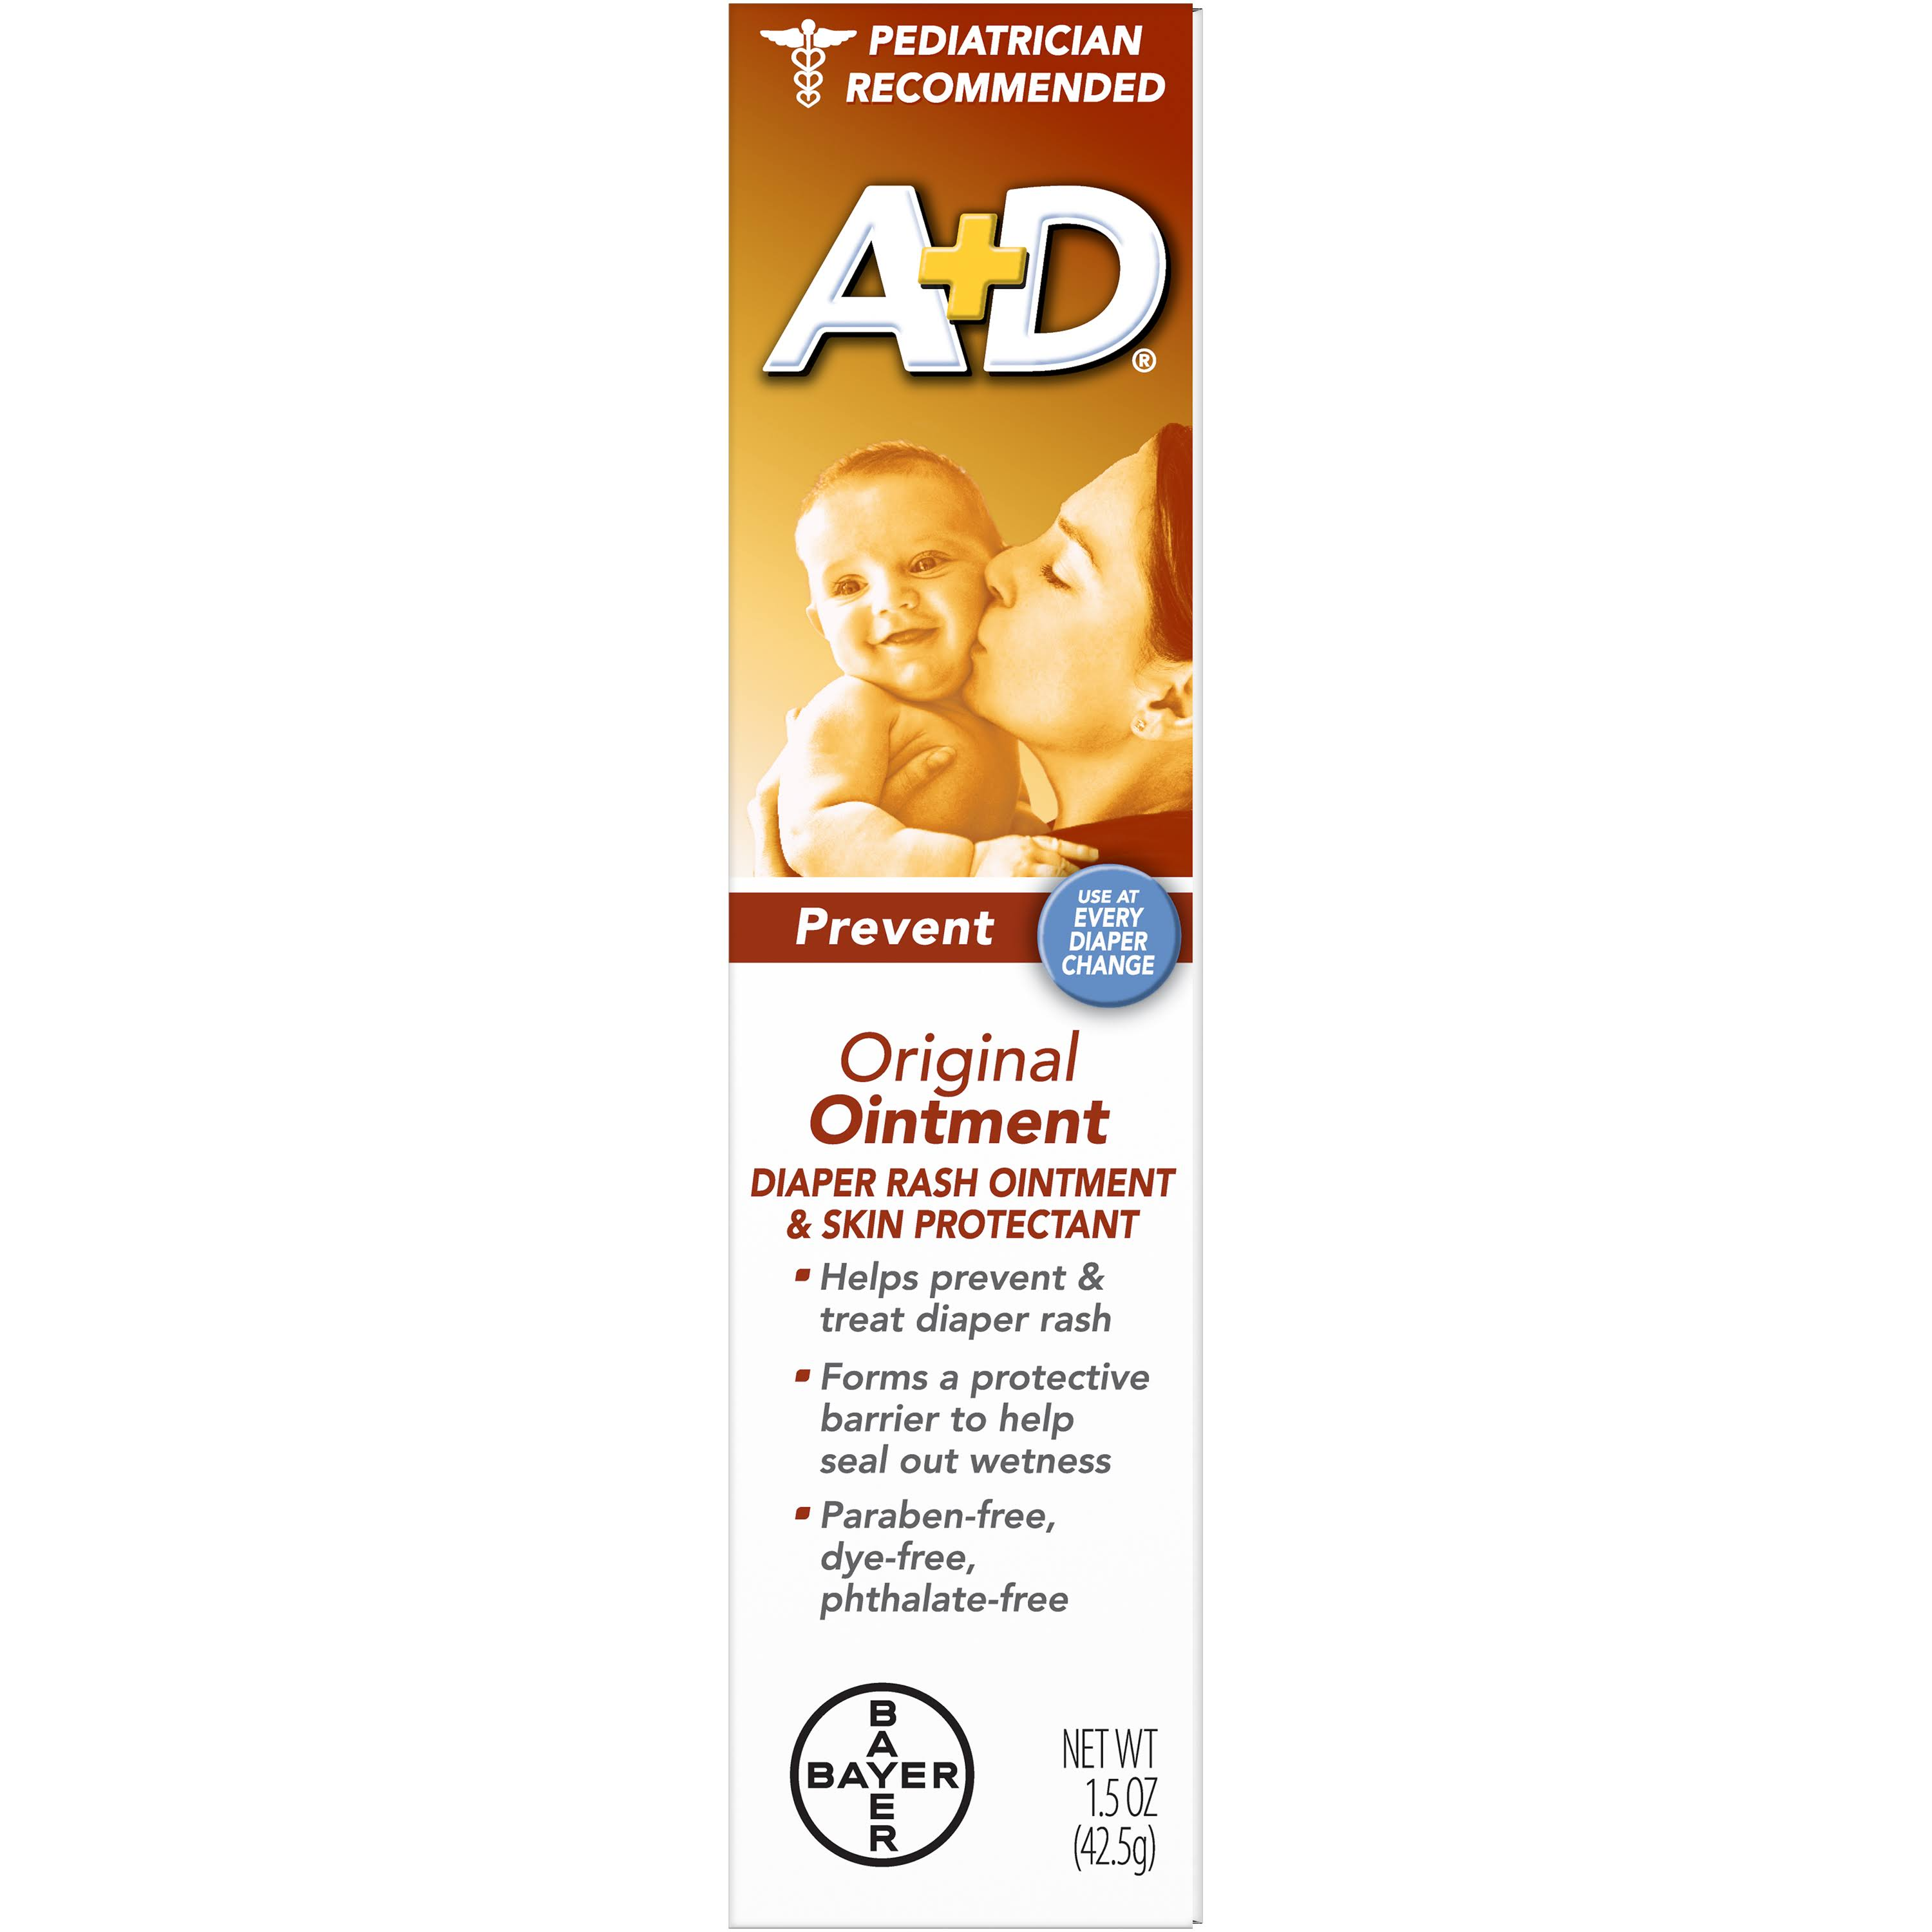 Bayer A+D Original Ointment - 1.5 oz